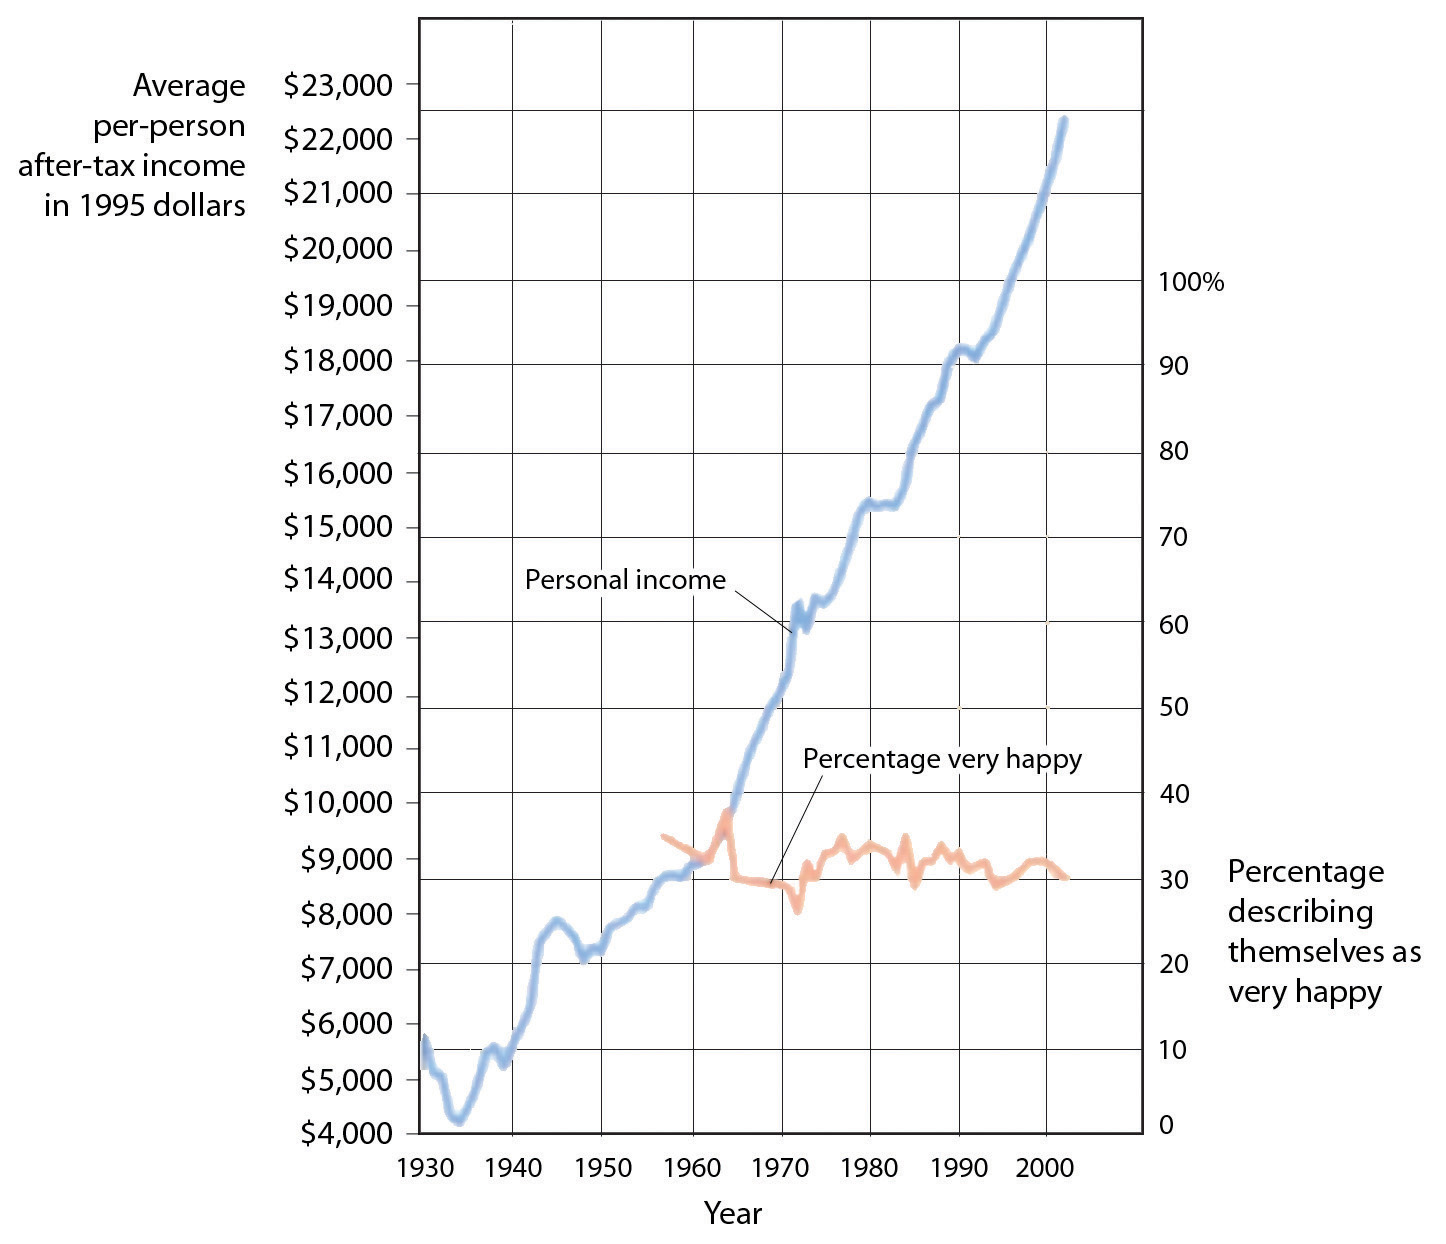 Although personal income keeps rising, happiness does not.